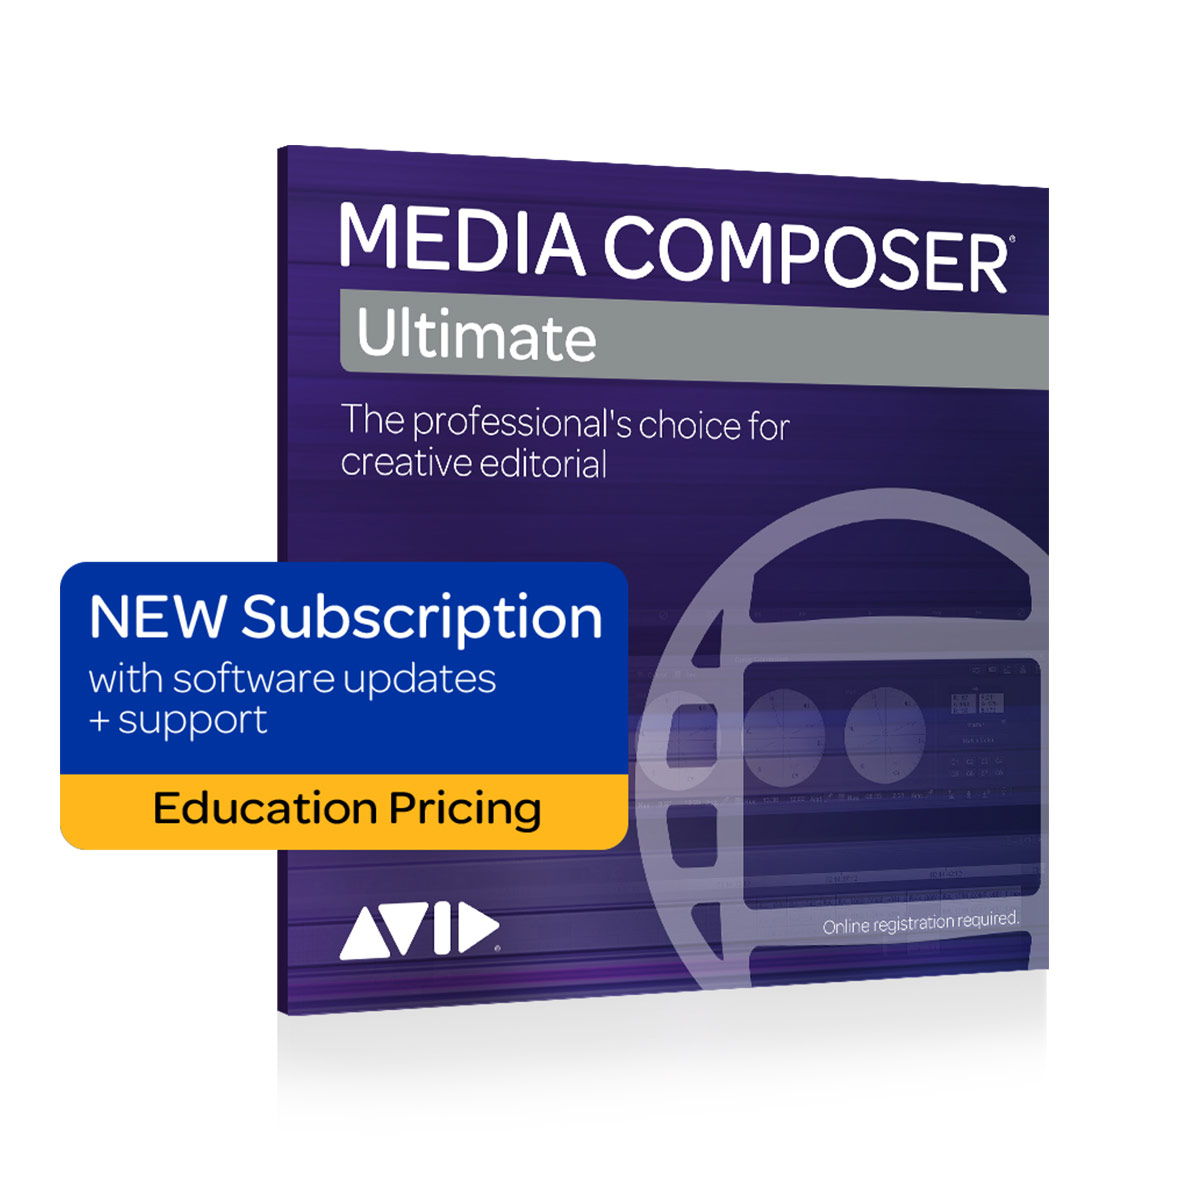 Avid Media Composer | Ultimate 1-Year Subscription - Education Pricing